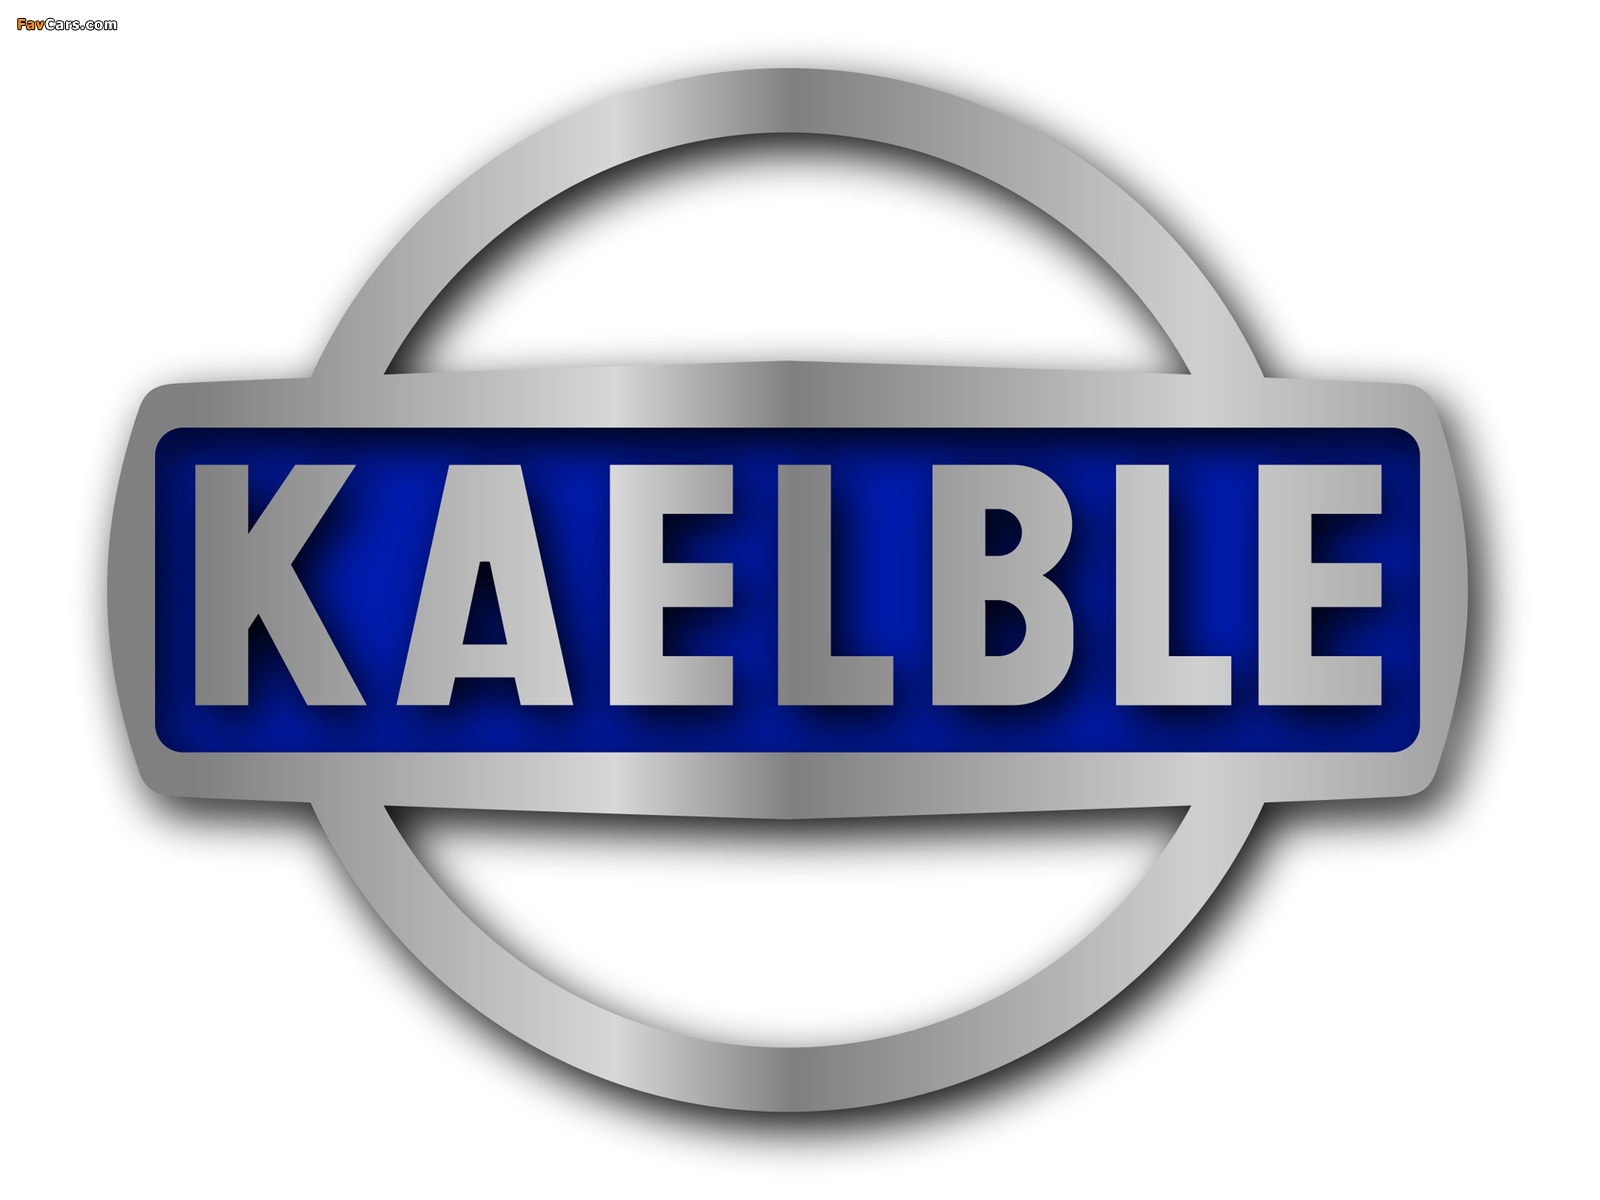 Pictures of Kaelble (1600 x 1200)